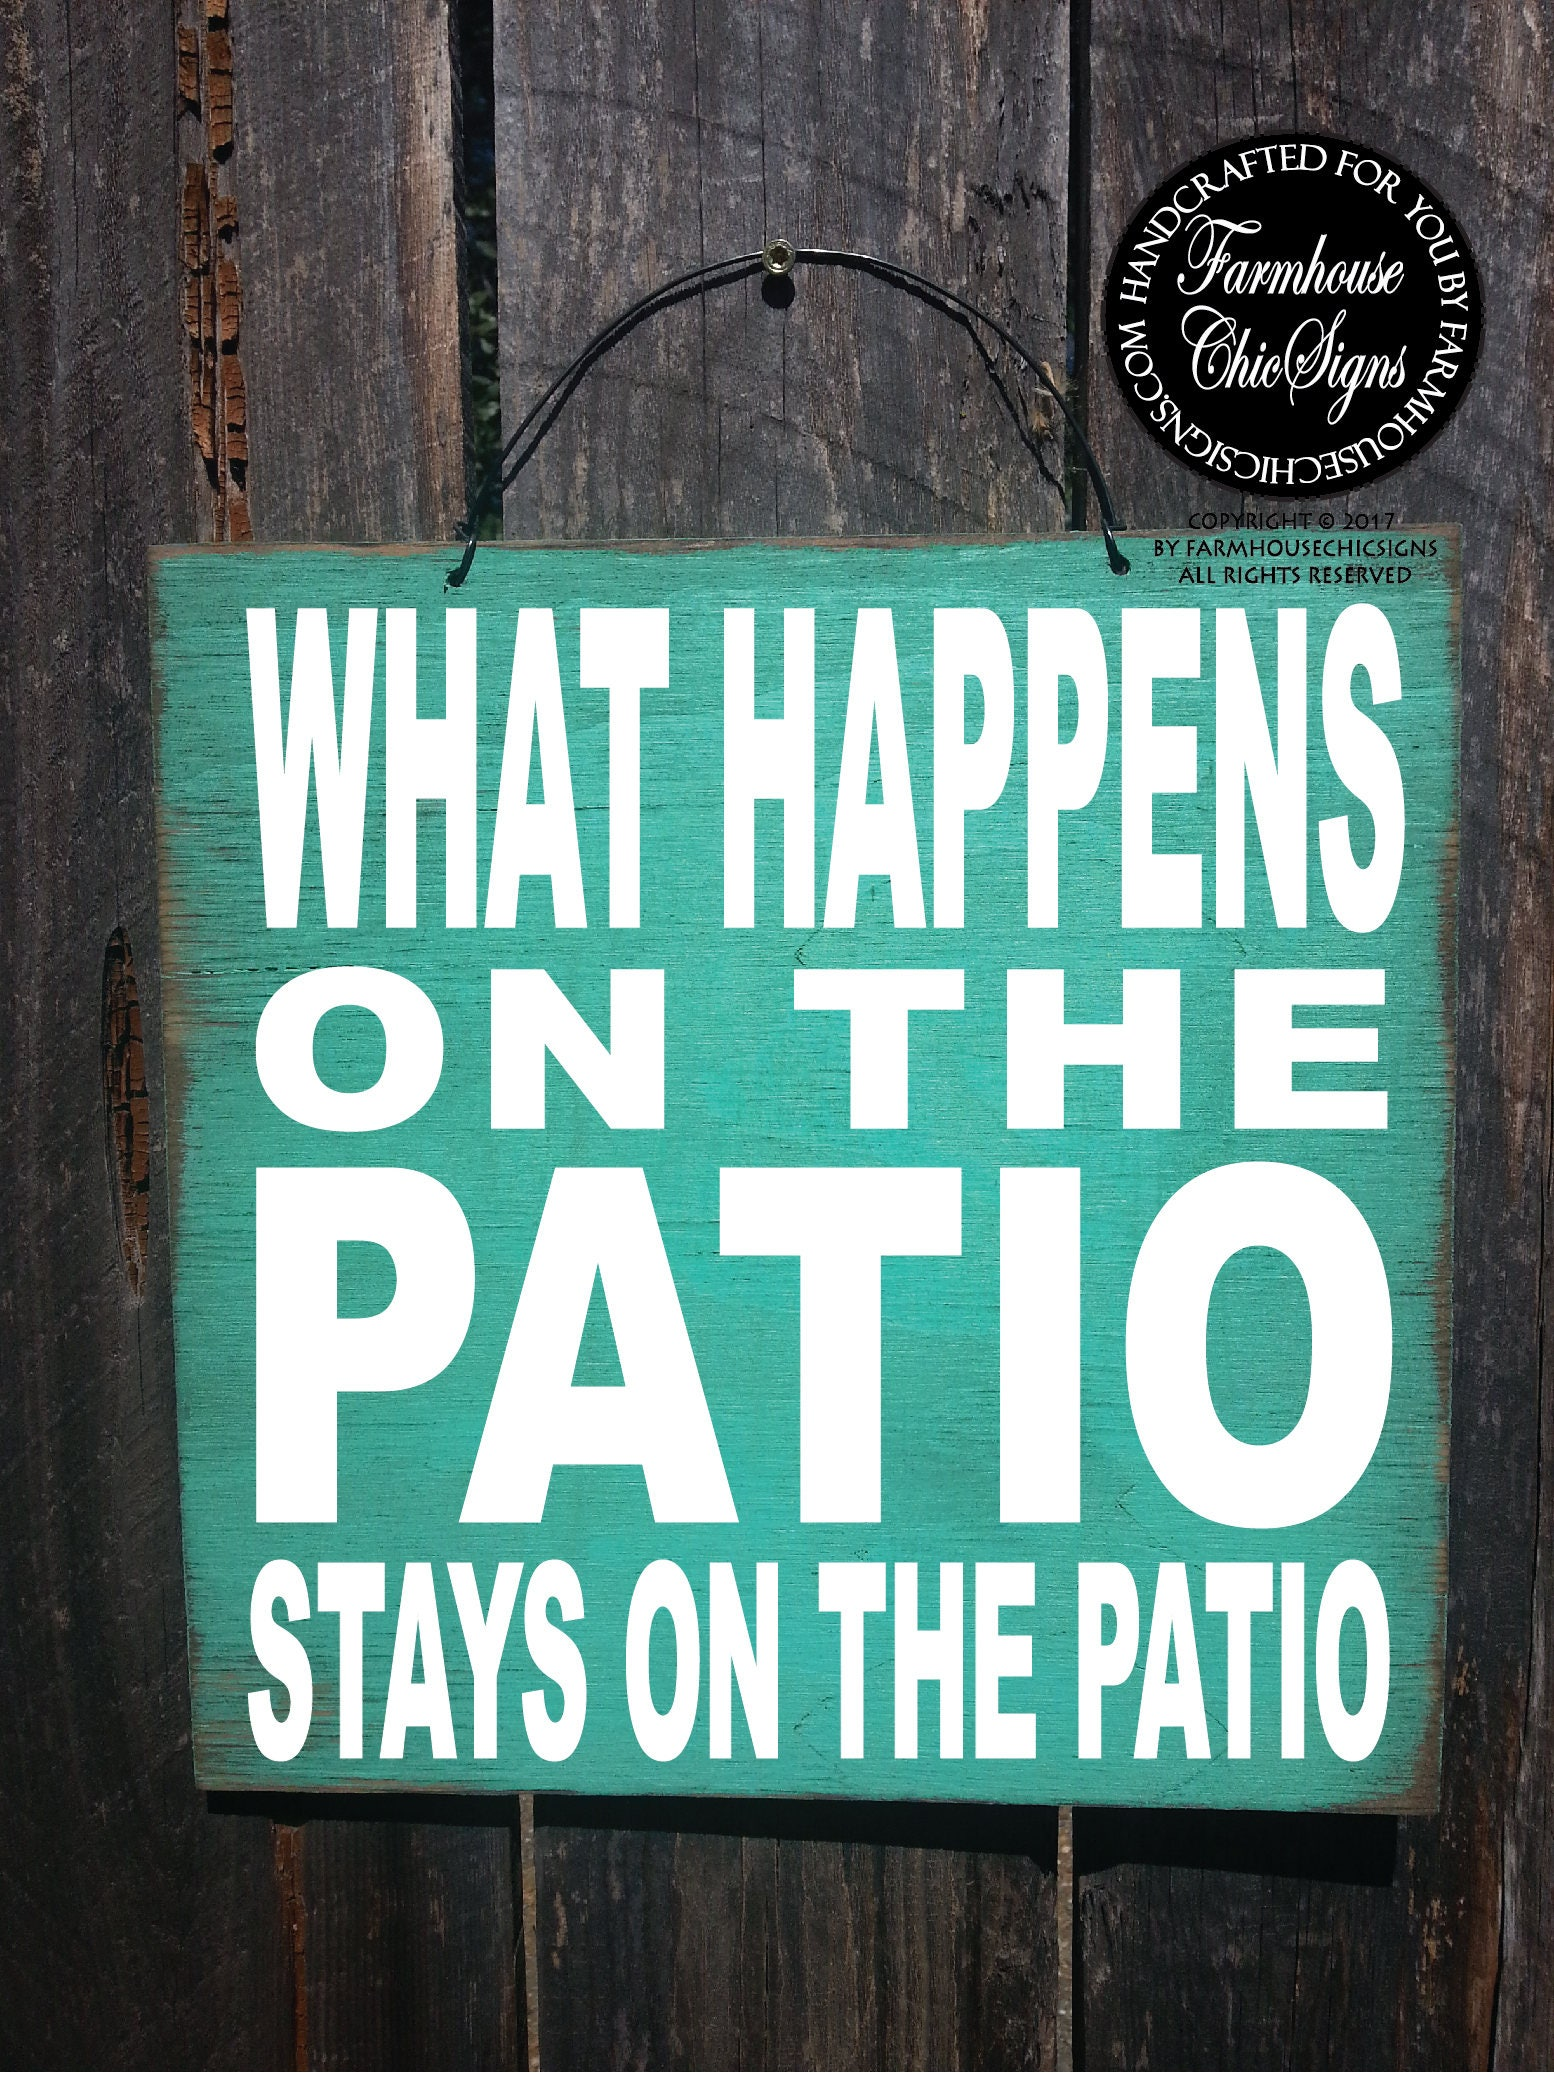 Patio Gift For Patio Funny Sign Housewarming Gift Patio